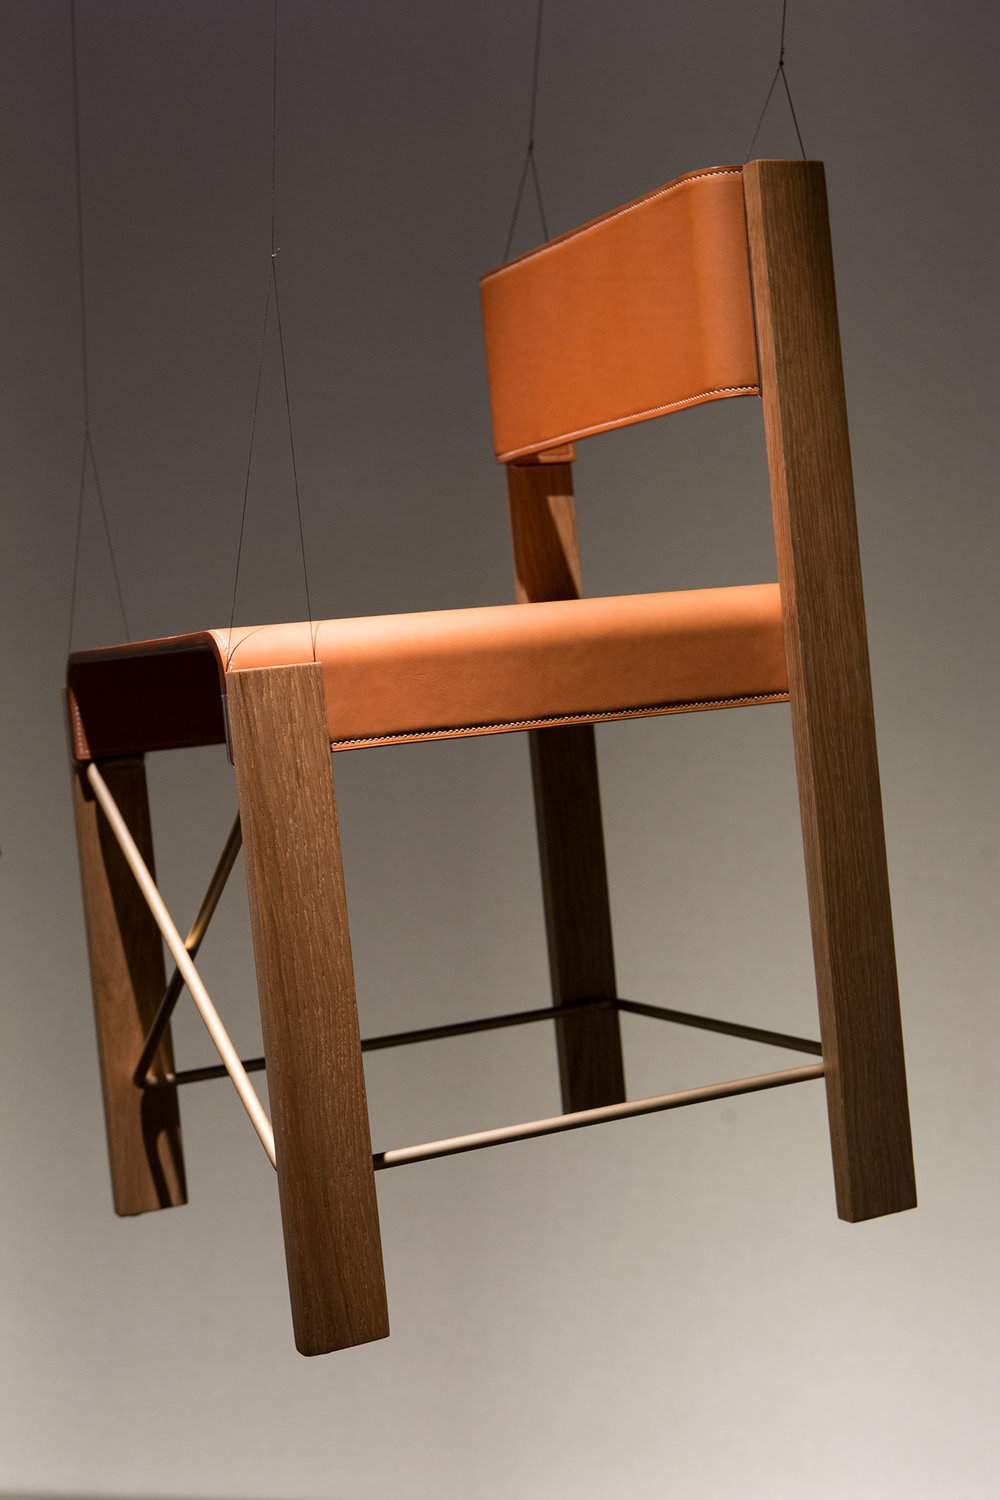 The Equis chair in calfskin, oak, and brushed brass.